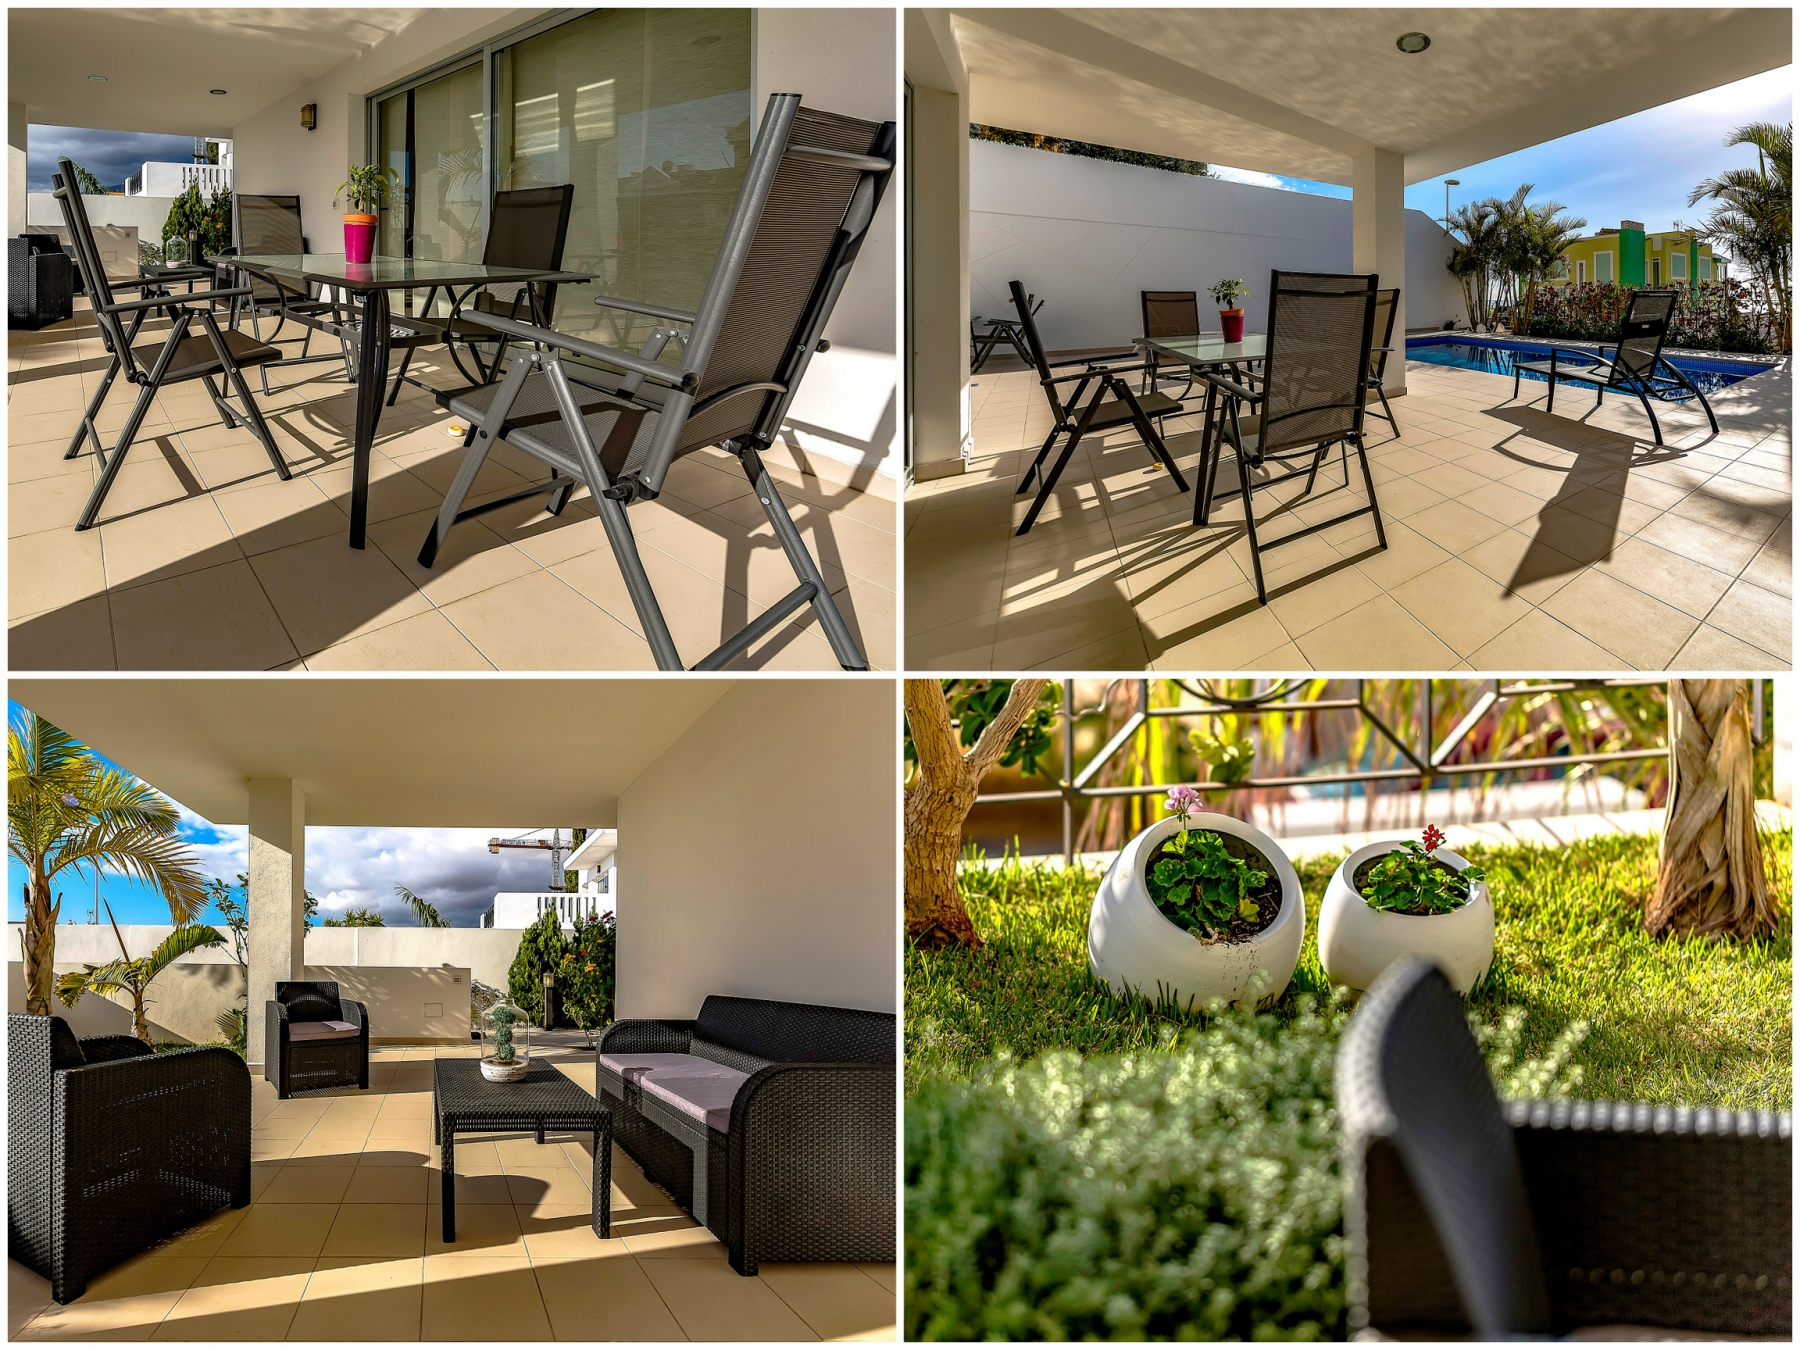 Properties for Sale in Tenerife, Canary Islands, Spain   SylkWayStar Real Estate. Luxury villa in the fashionable area of the south of the island of Tenerife – Madroñal.. Image-22855